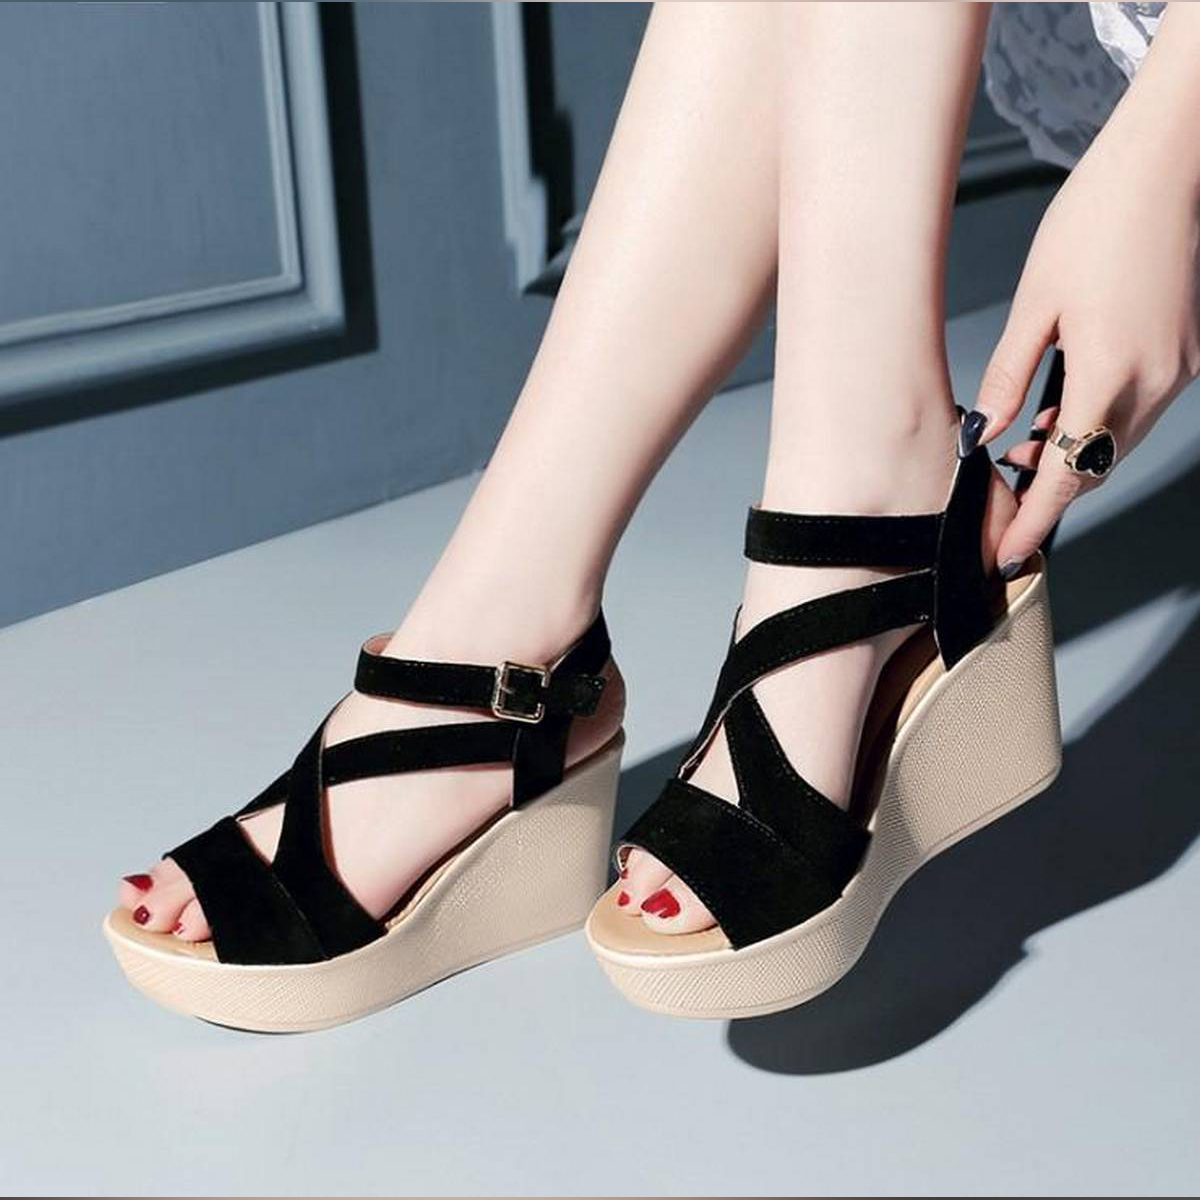 OPEN TO RETRO HIGH WEDGE SANDALS